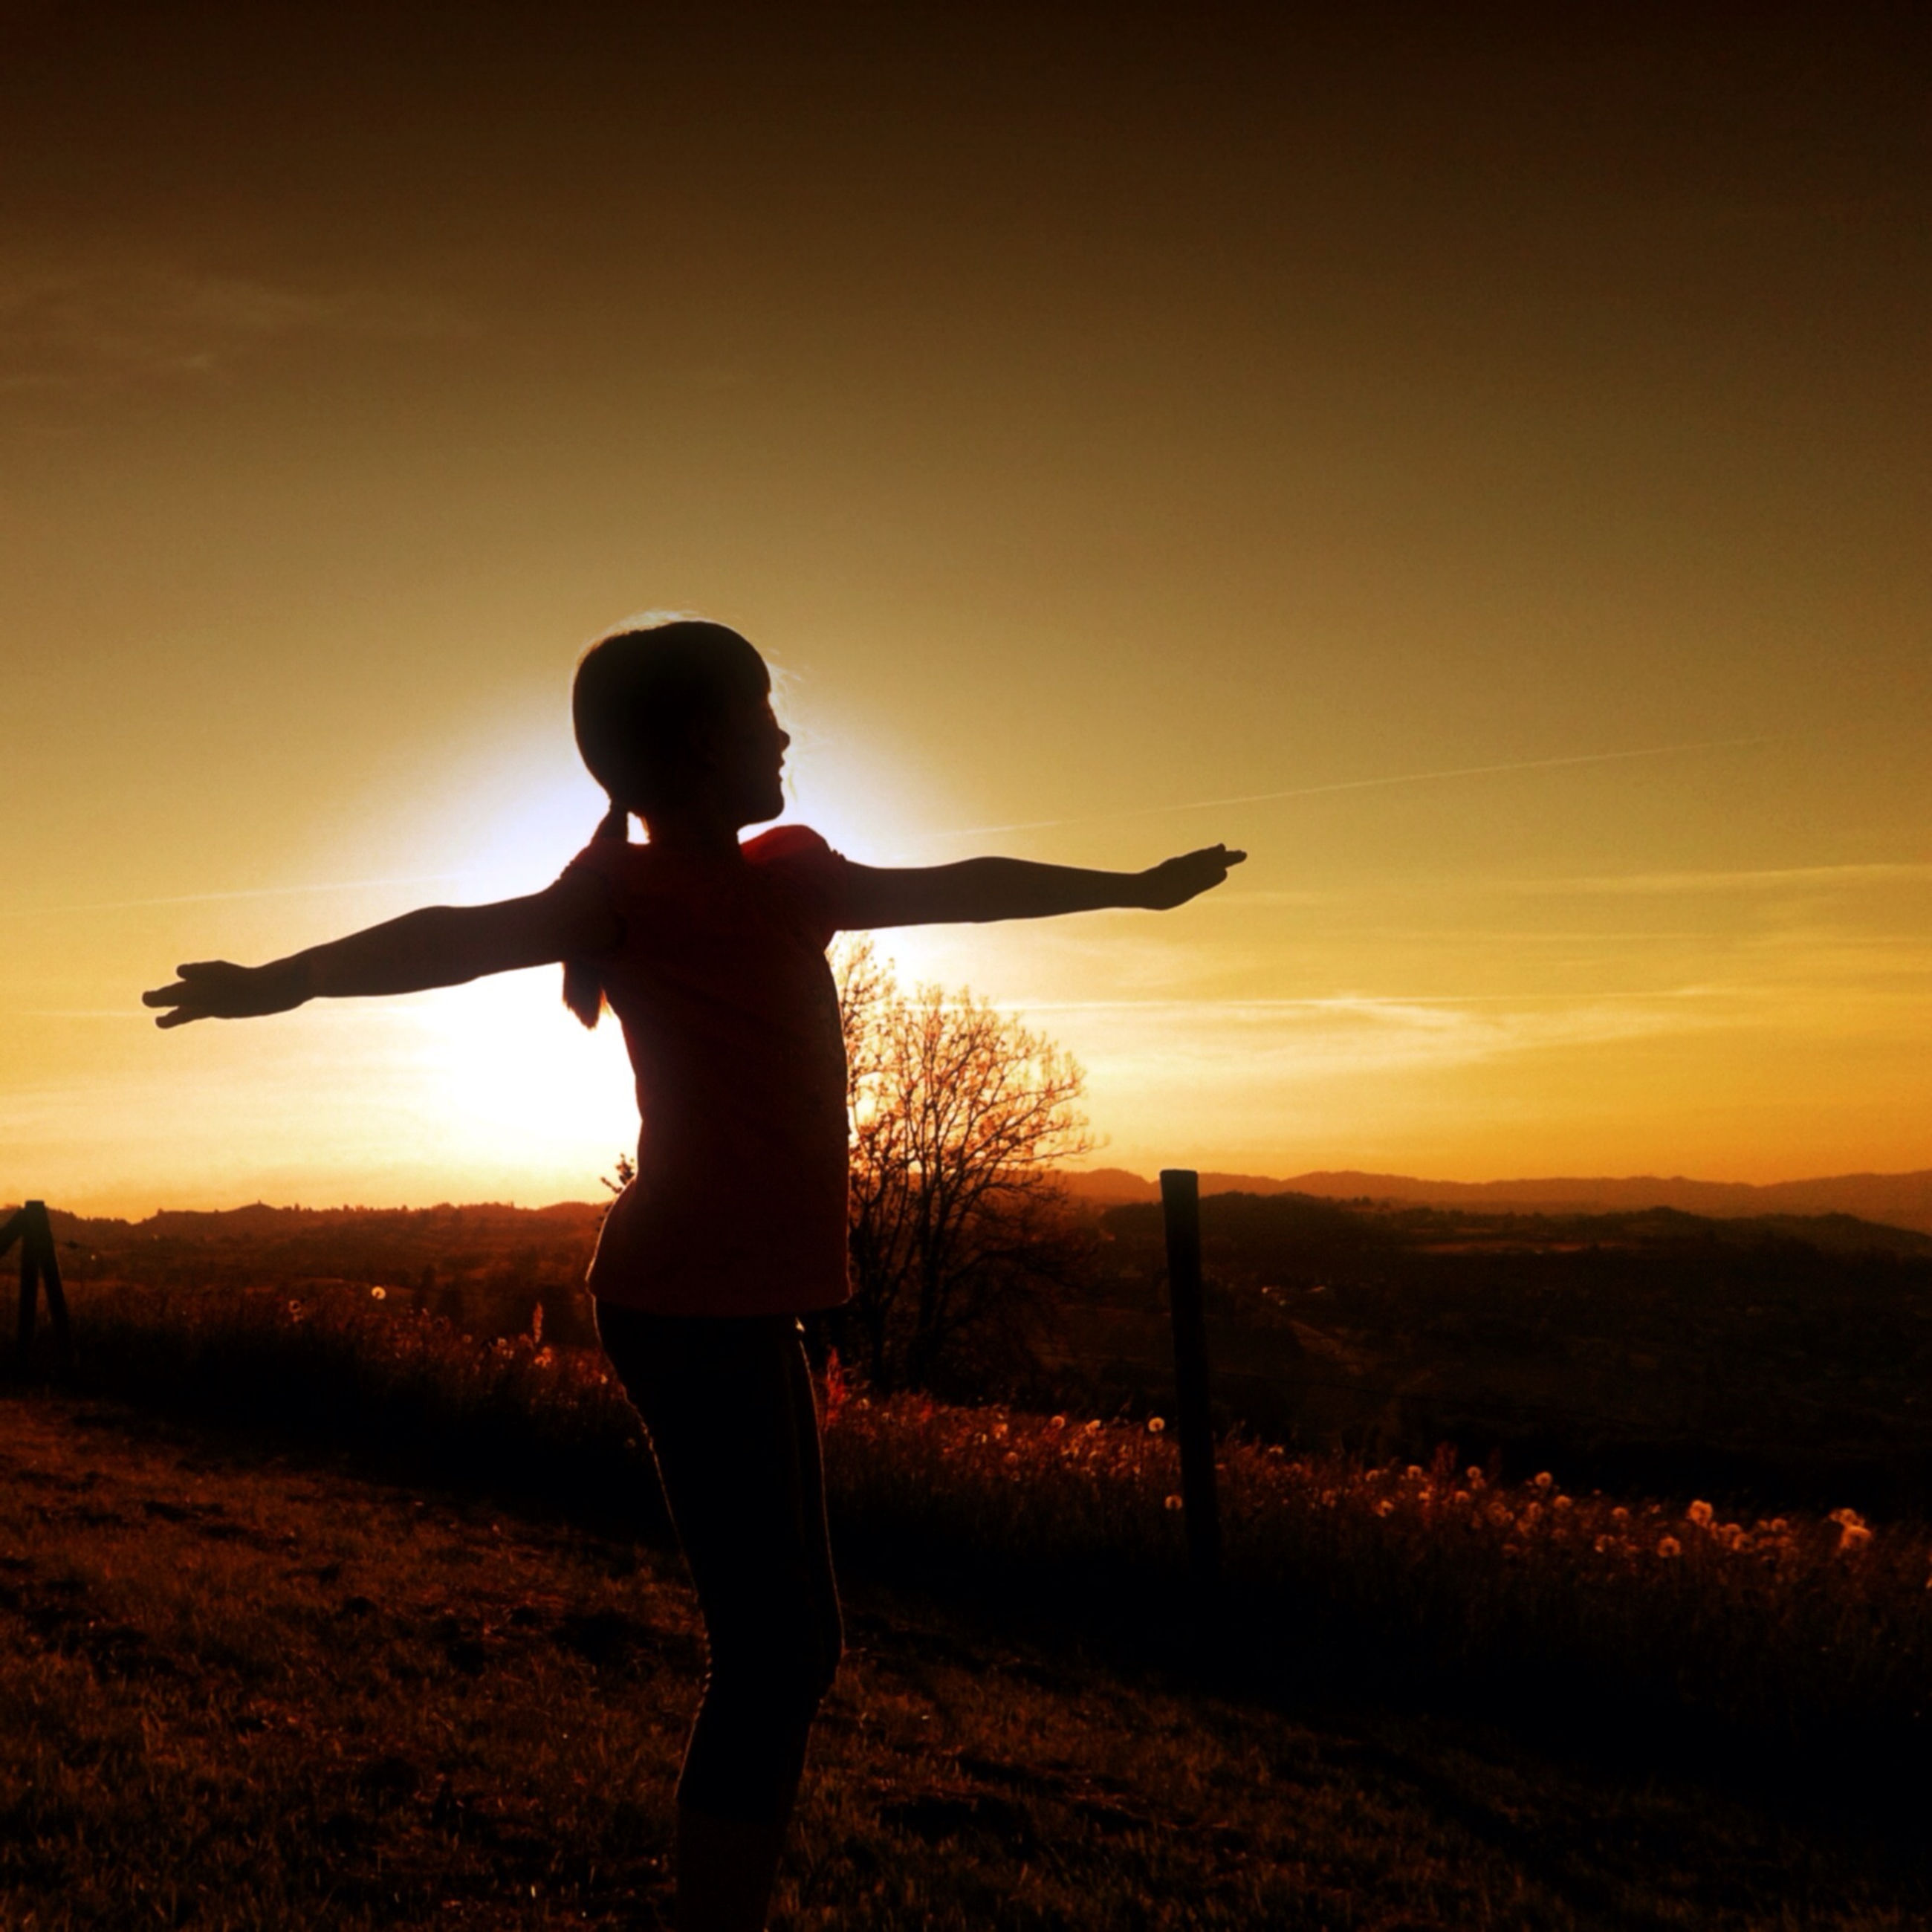 sunset, silhouette, full length, leisure activity, sky, lifestyles, landscape, standing, field, orange color, tranquil scene, tranquility, scenics, beauty in nature, nature, horizon over land, sun, arms outstretched